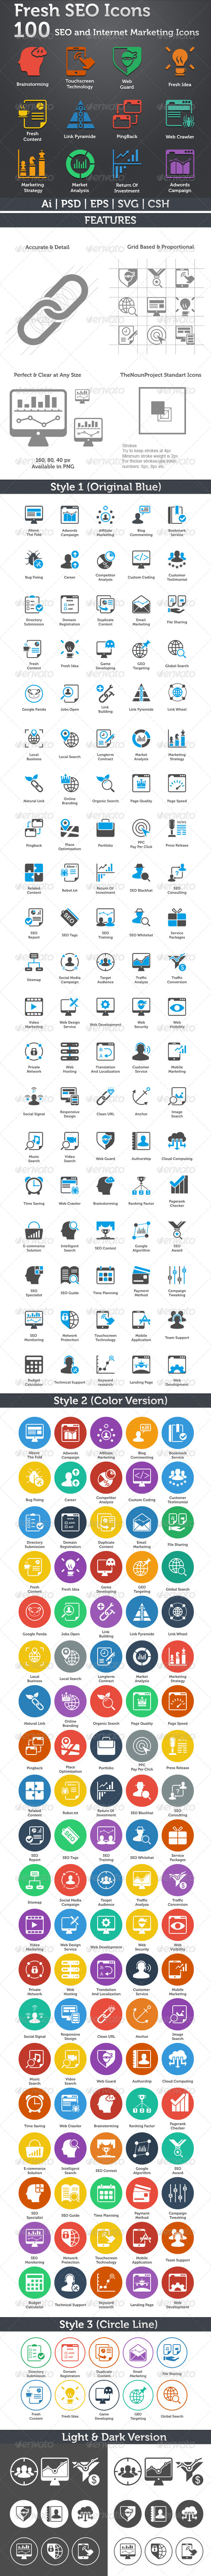 GraphicRiver Fresh SEO Icons SEO and Internet Marketing Icons 5049345